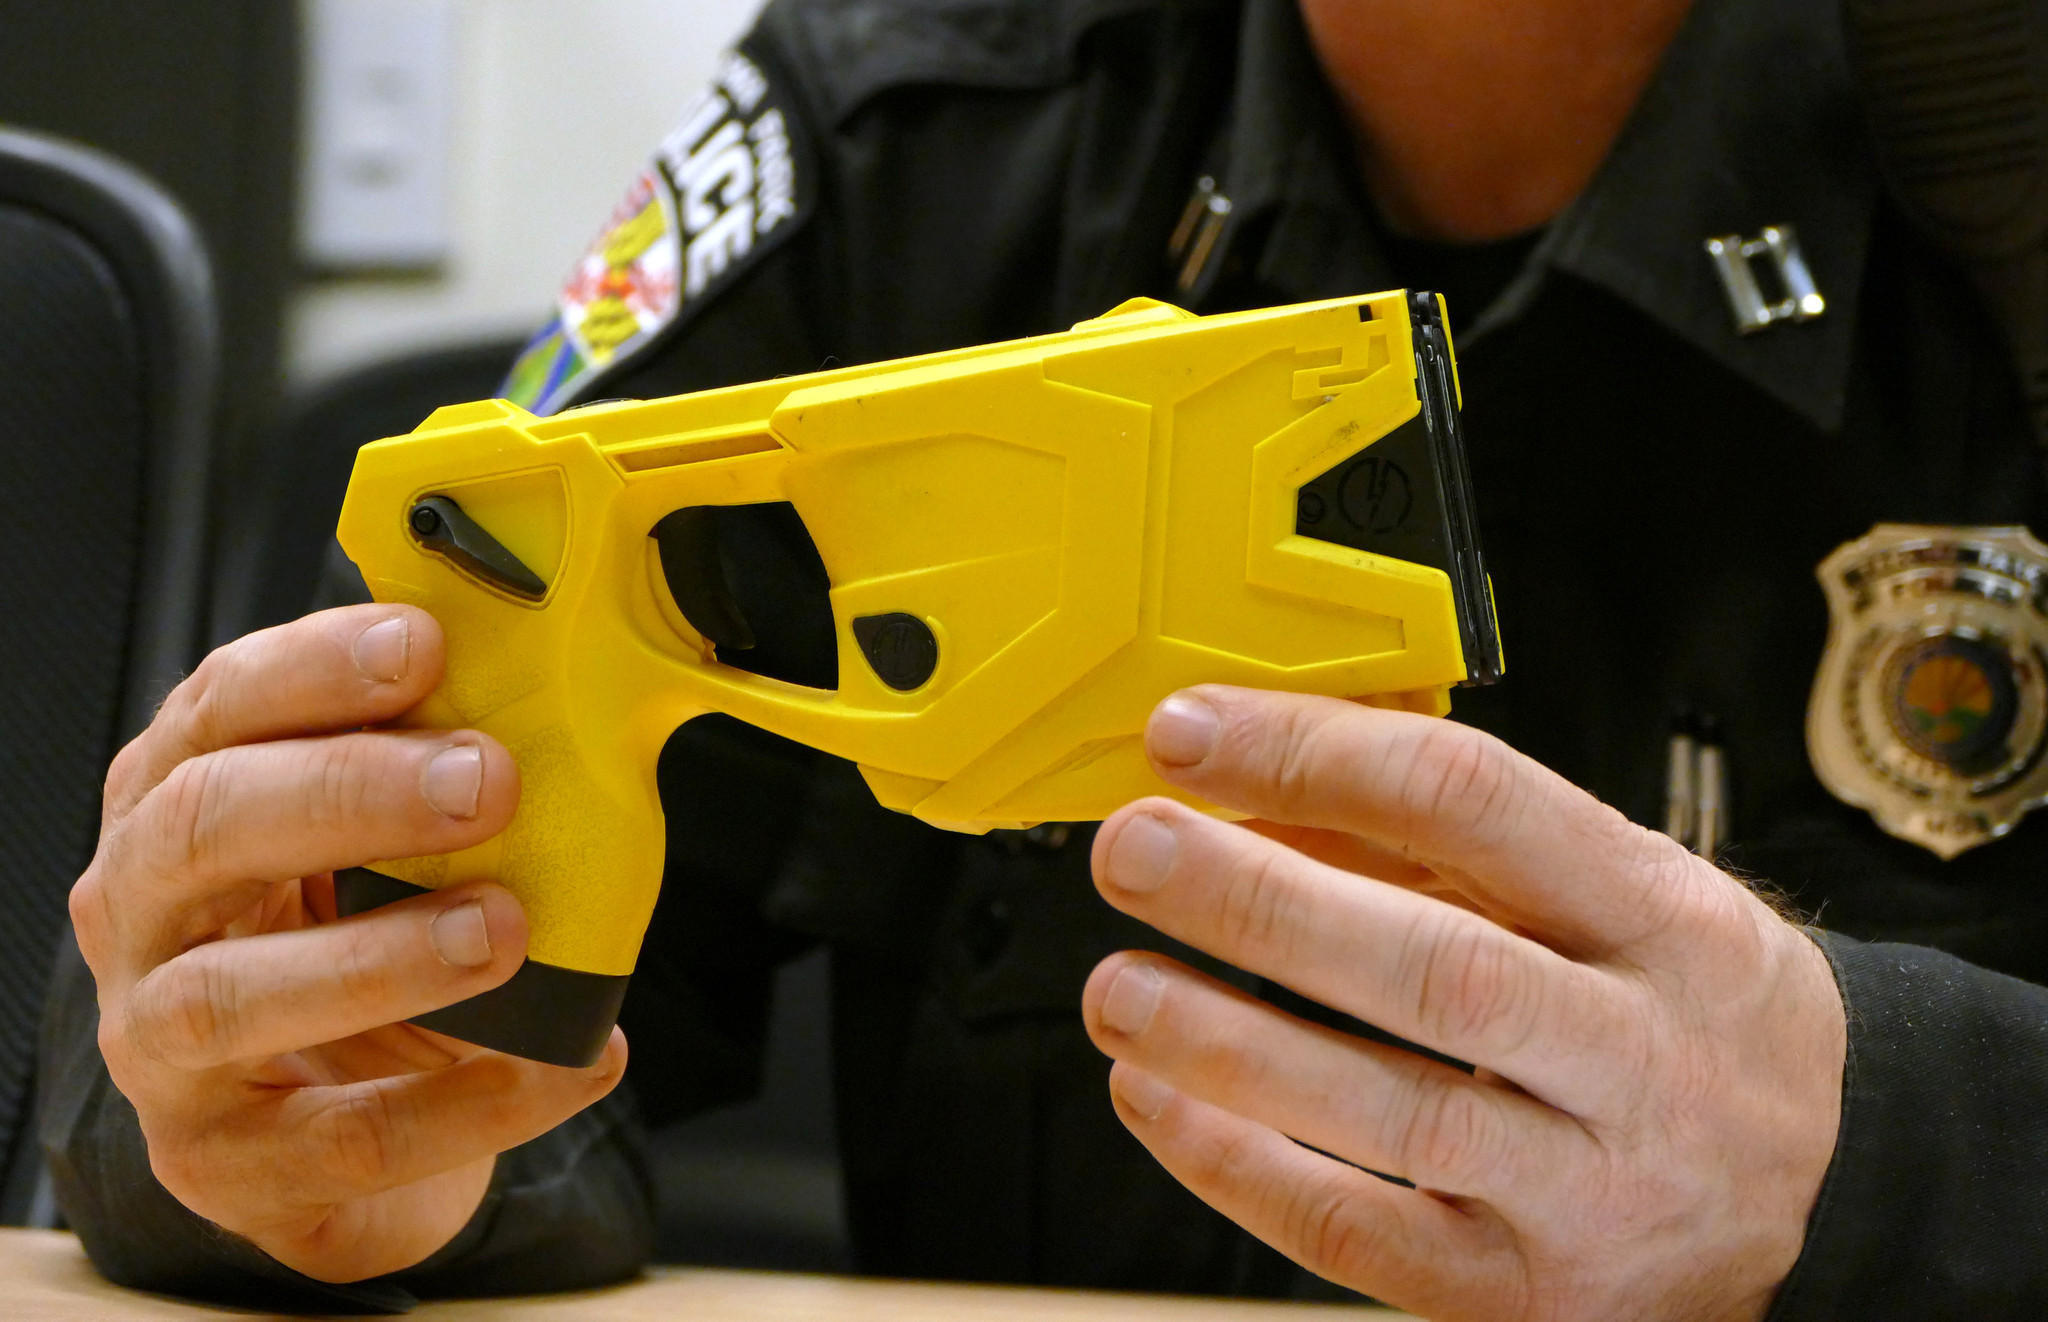 police officers could be sued over unconstitutional taser